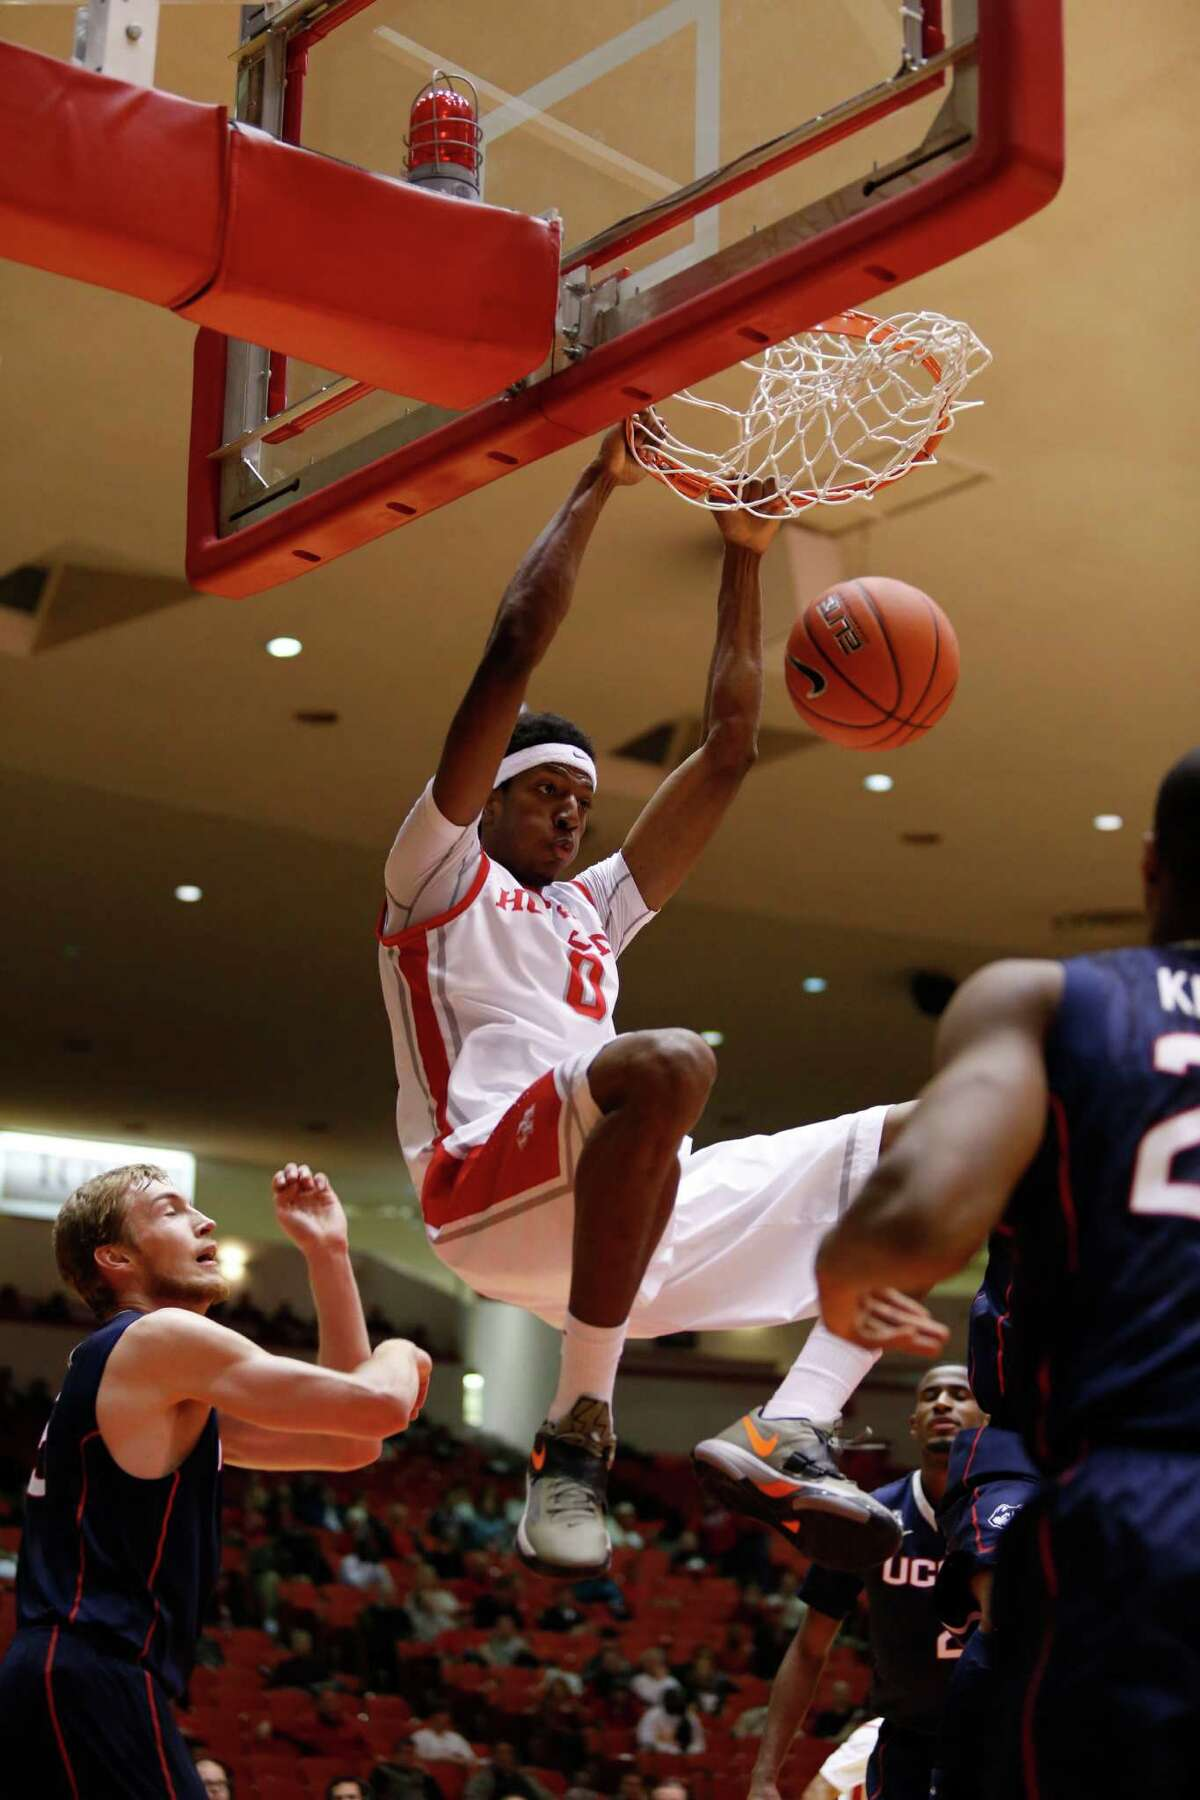 Houston guard Danrad Knowles rattles the rim en route to two of his 13 points in the Cougars' upset of No. 17 Connecticut on Tuesday night.